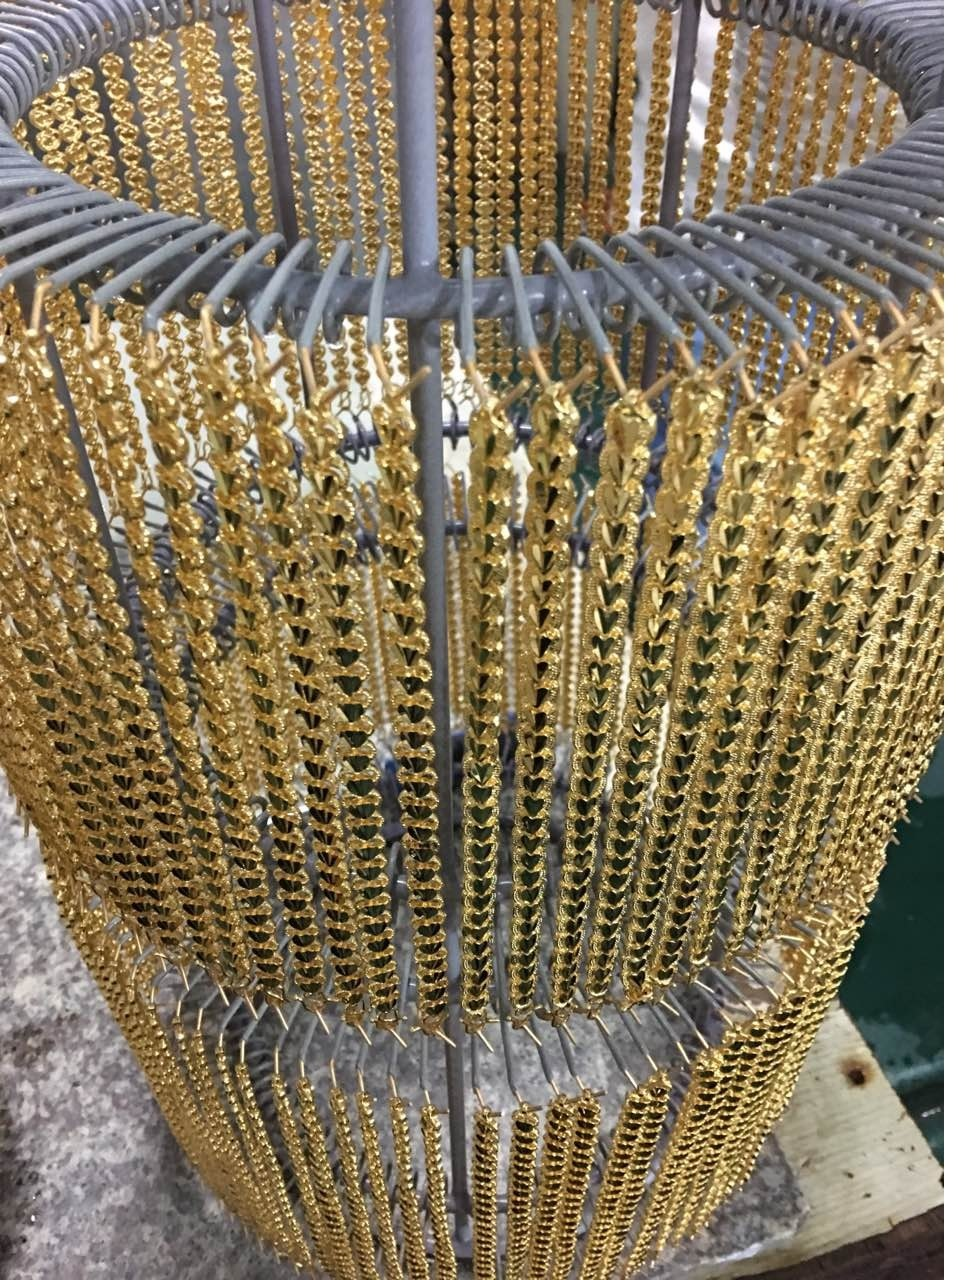 [Hot Item] Non-Cyanide Hardware Jewelry Gold Electroplating Process and  Materials/ Additive